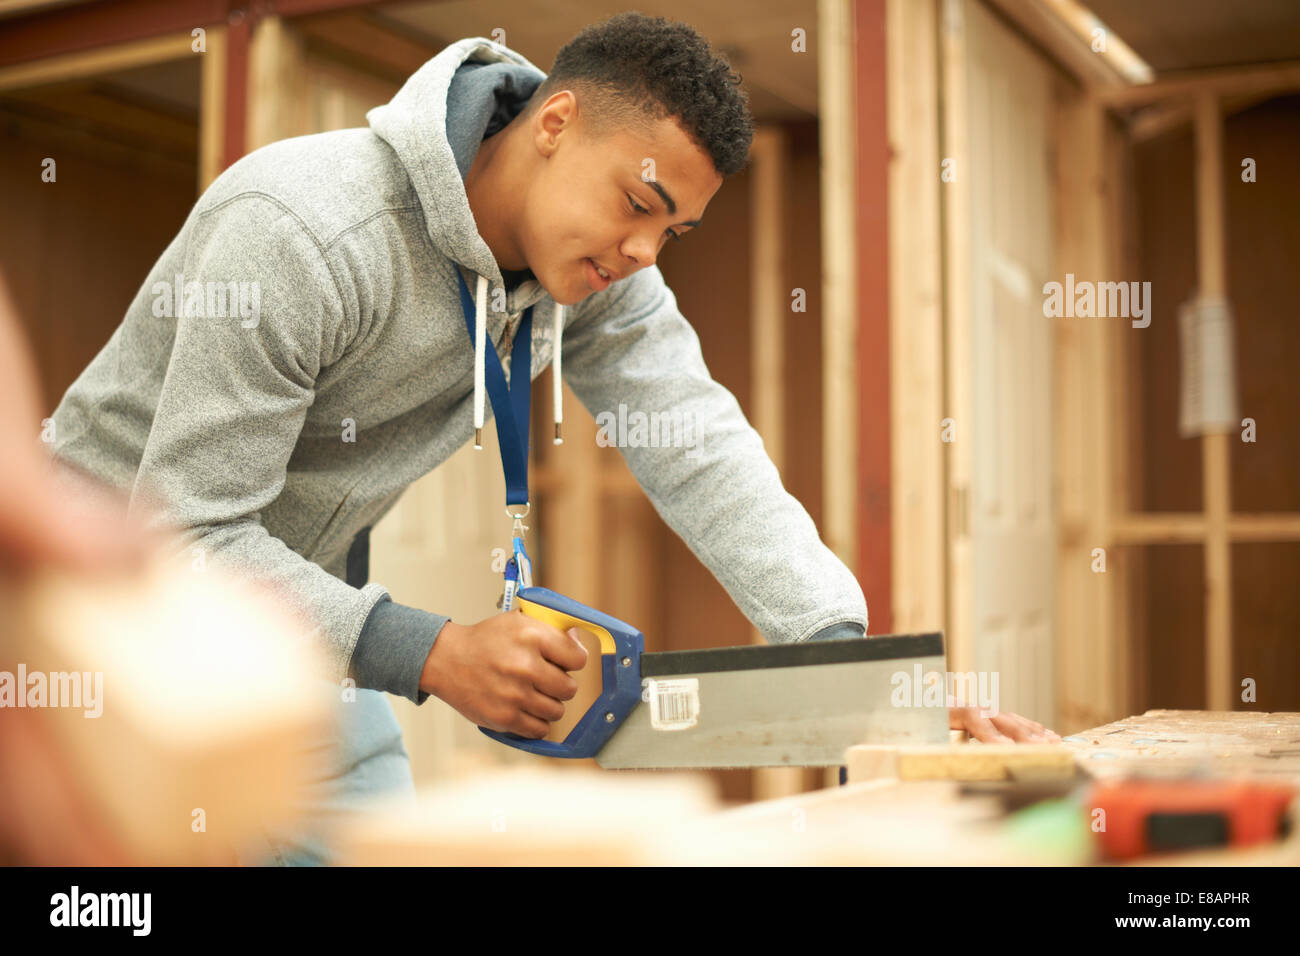 Male college student using saw in woodworking workshop - Stock Image